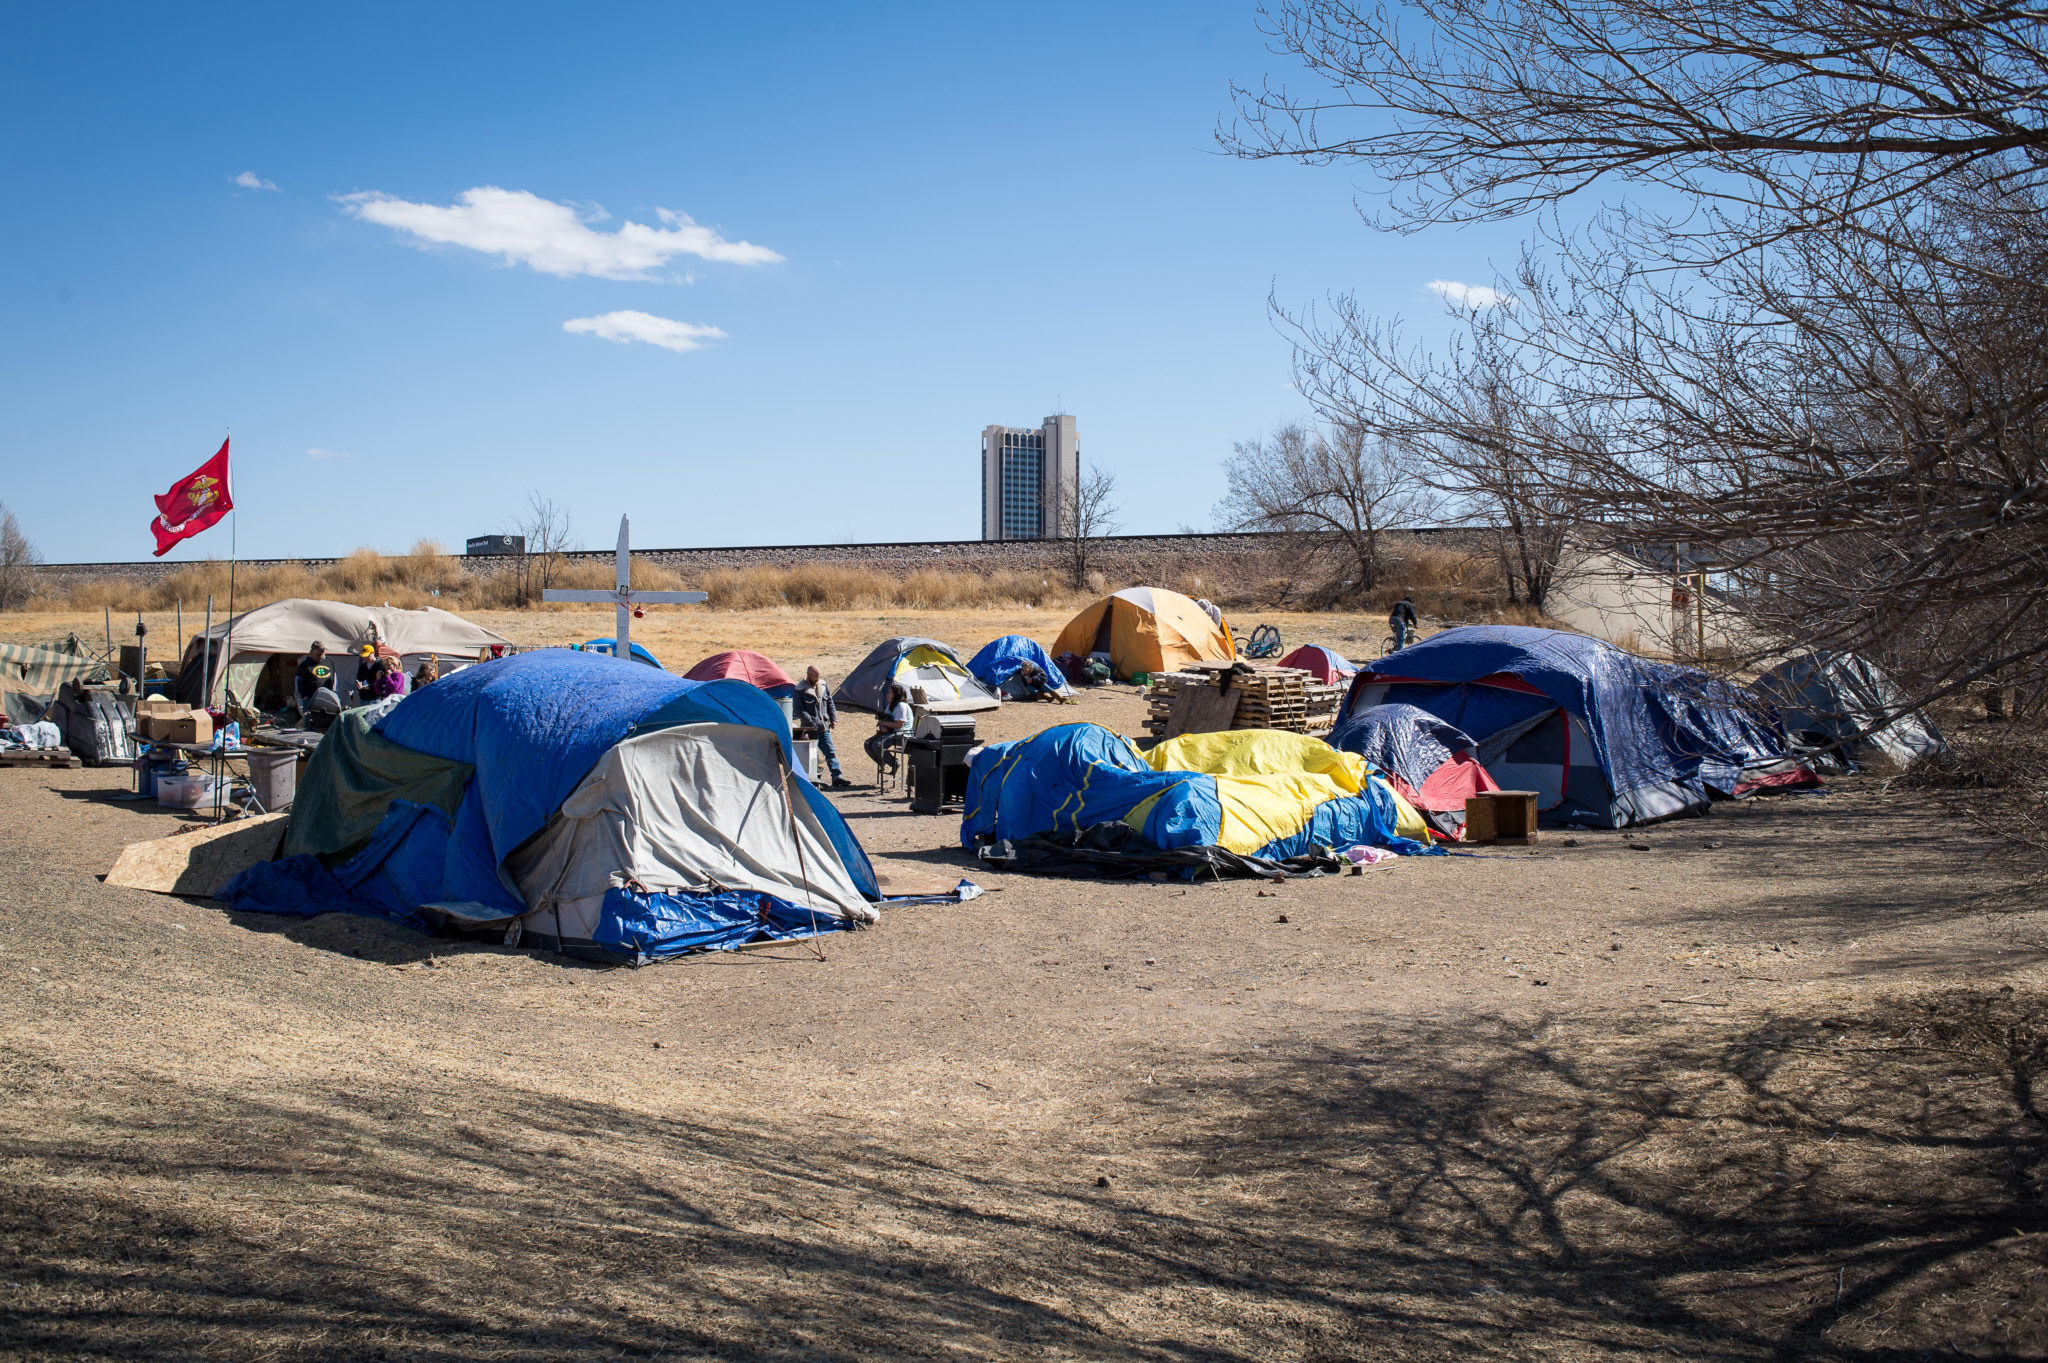 Christ Church Camp of New Beginnings, known as Tent City by some in Amarillo.